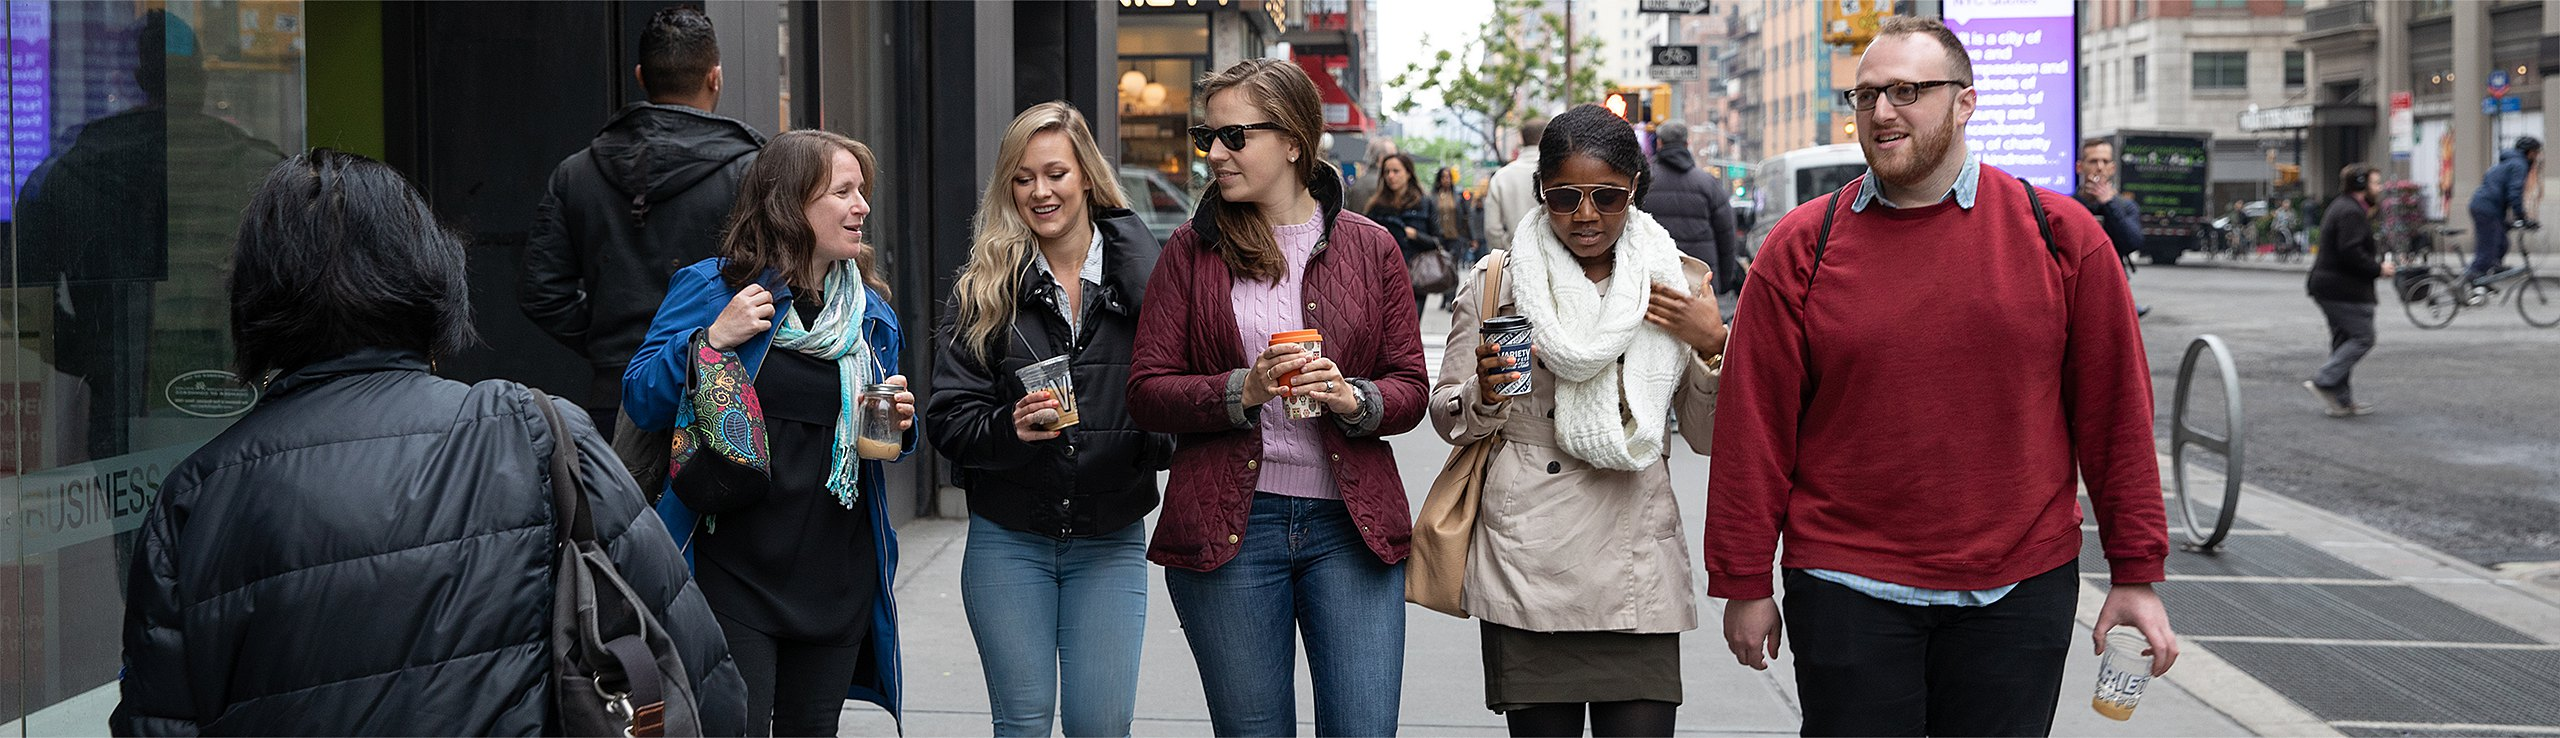 The On-Ramps team walks down a busy NYC street after a coffee break